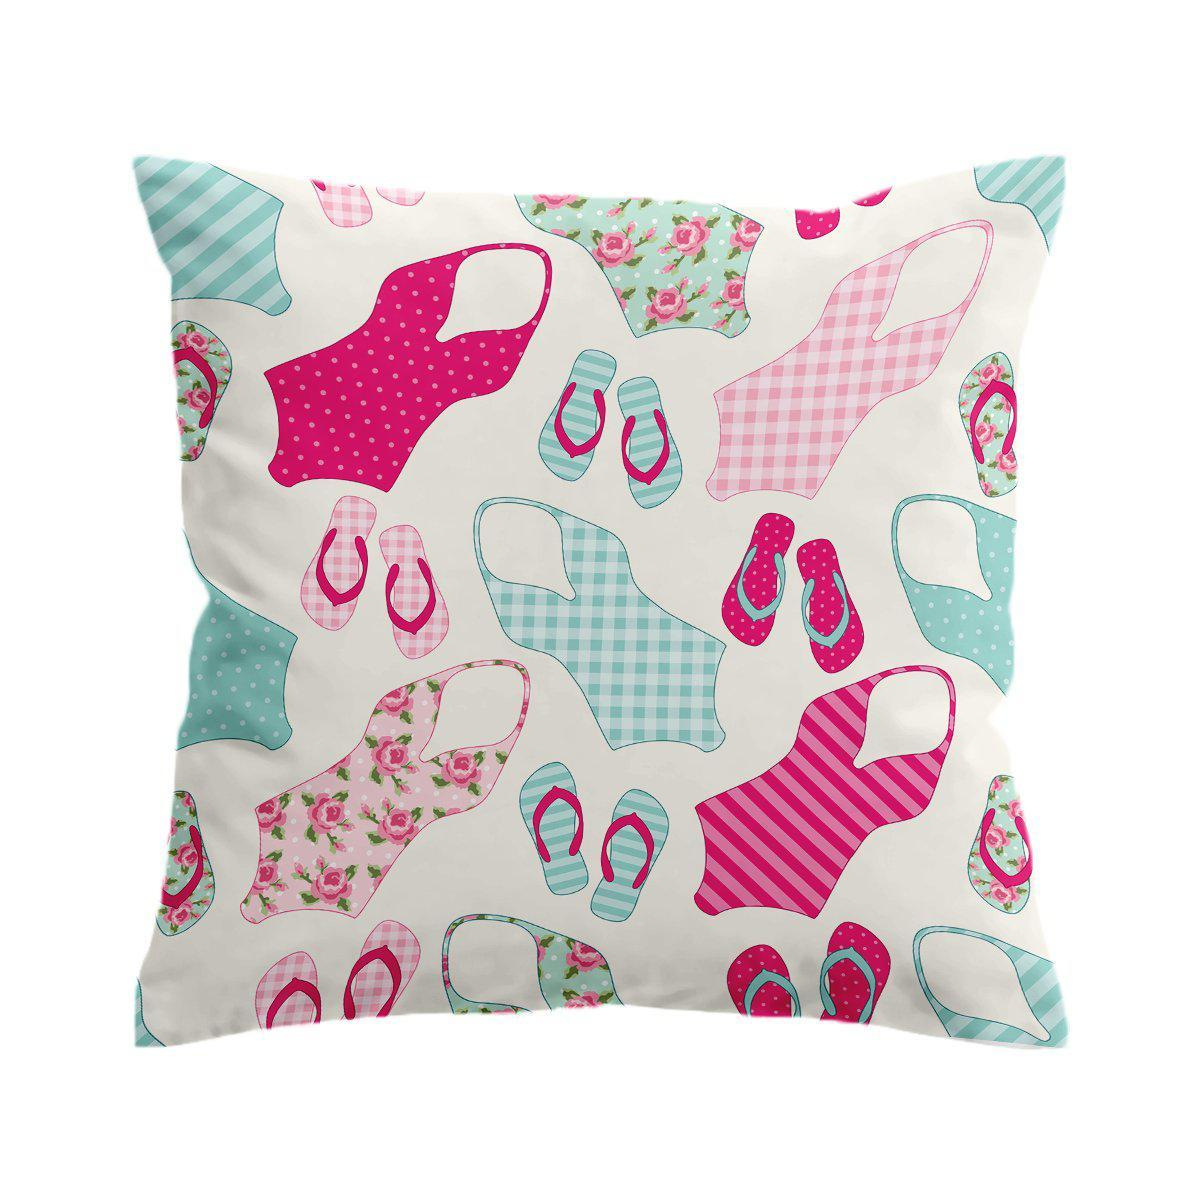 All I Need Are My Flip Flops and Swimsuits Pillow Cover-Coastal Passion